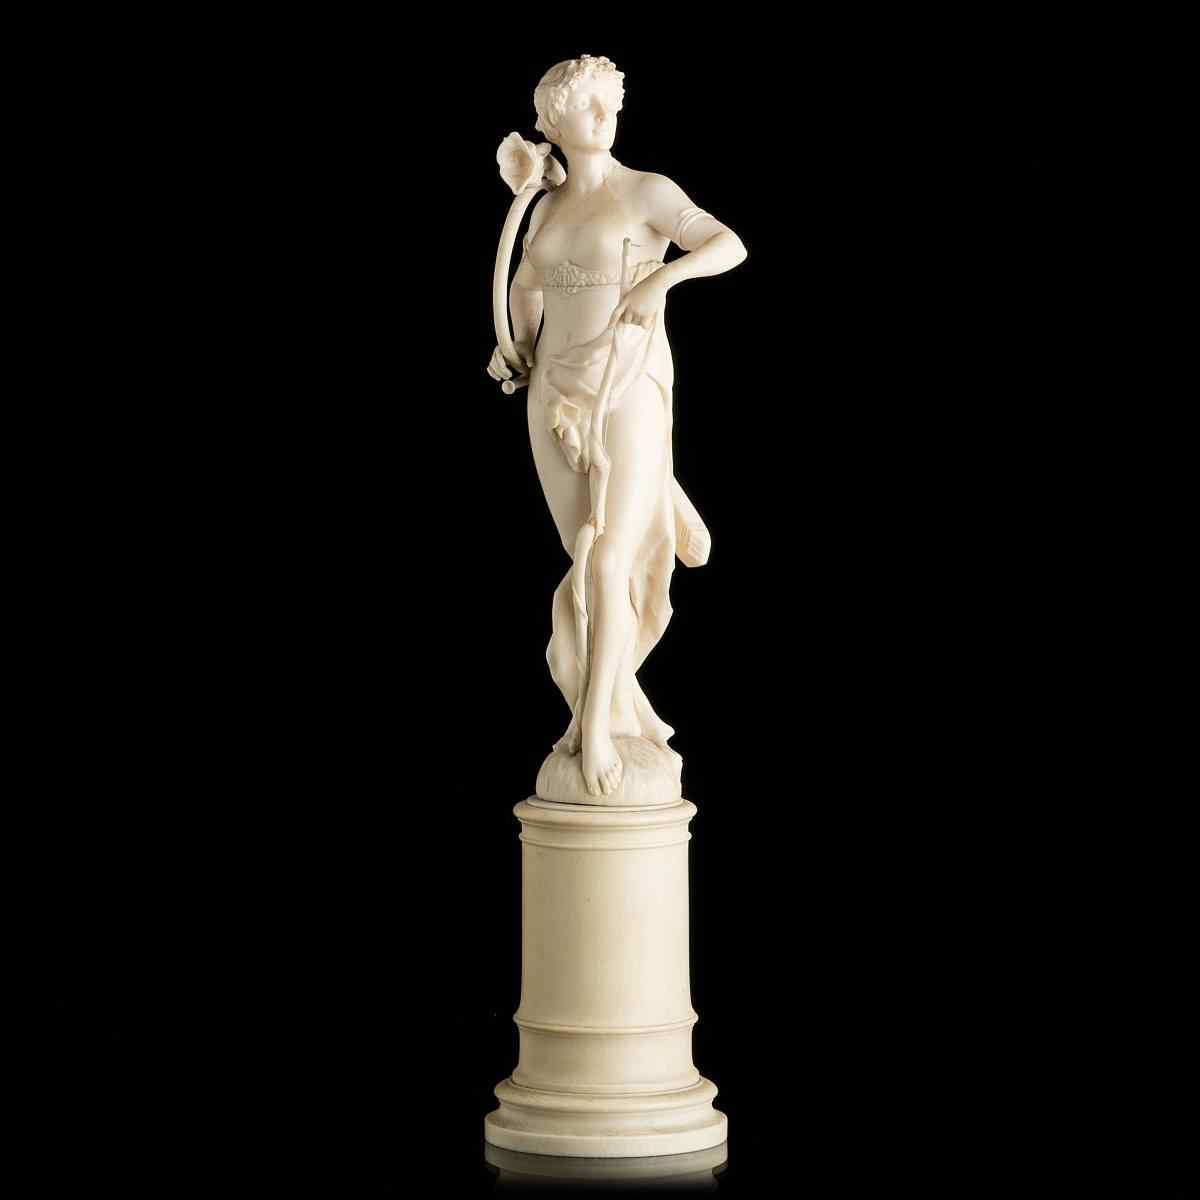 Ivory Sculpture Dieppe France